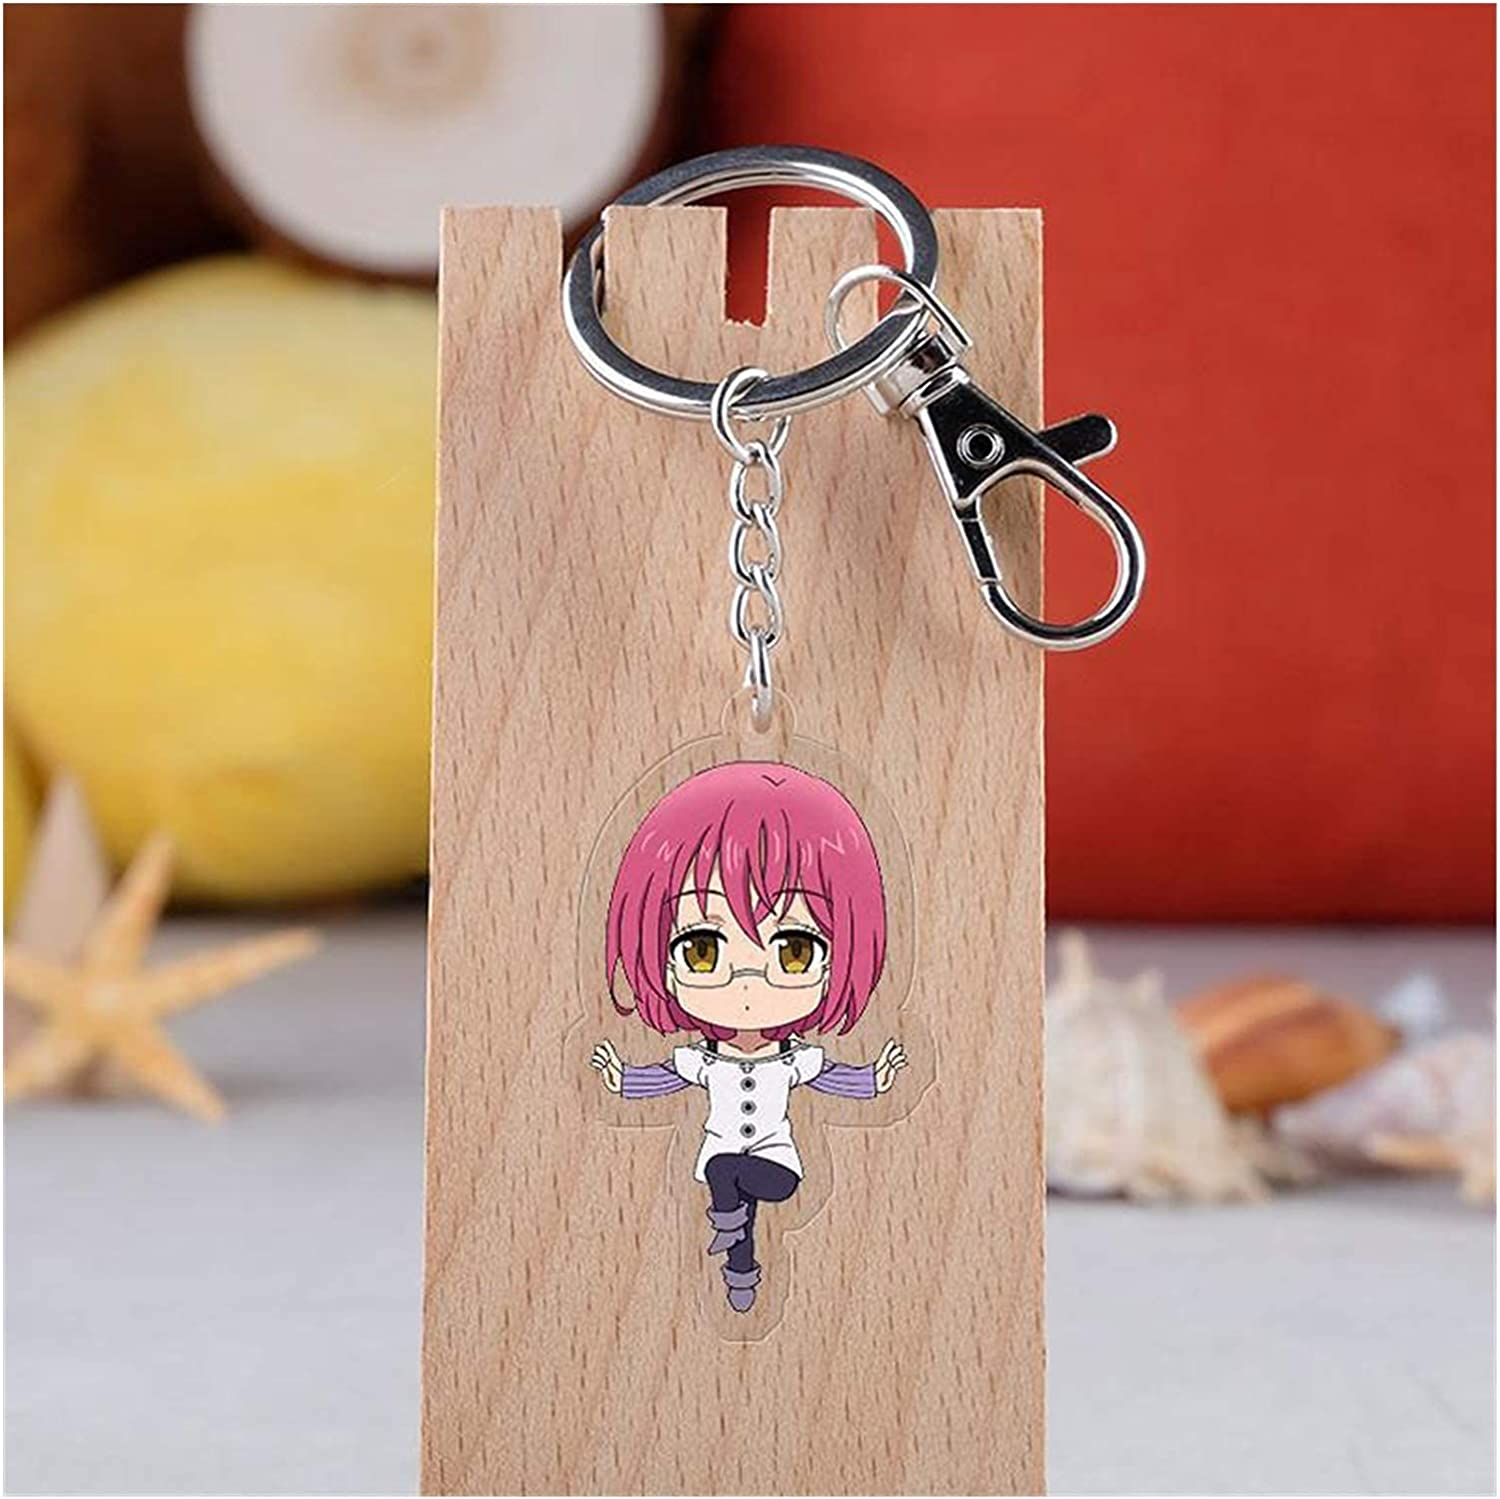 WUTONG Keychain Keychain Cartoon Car Key Holder Chain Pendants Keyrings Key Rings (Color : H07, Size : 55mm)